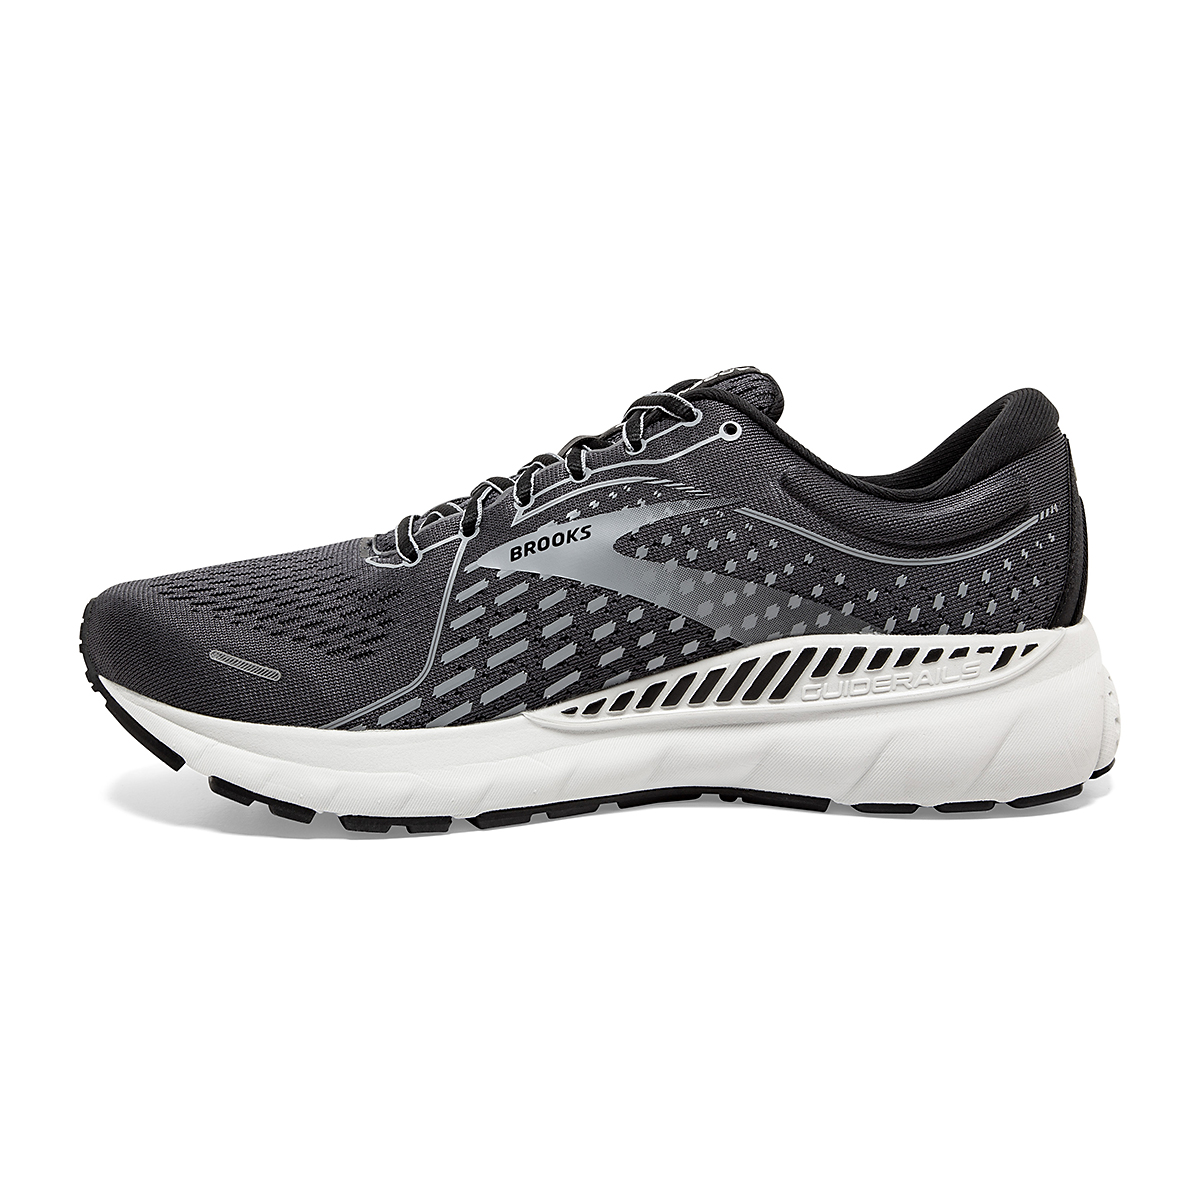 Men's Brooks Adrenaline GTS 21 Running Shoe - Color: Blackened Pearl - Size: 7 - Width: Regular, Blackened Pearl, large, image 2